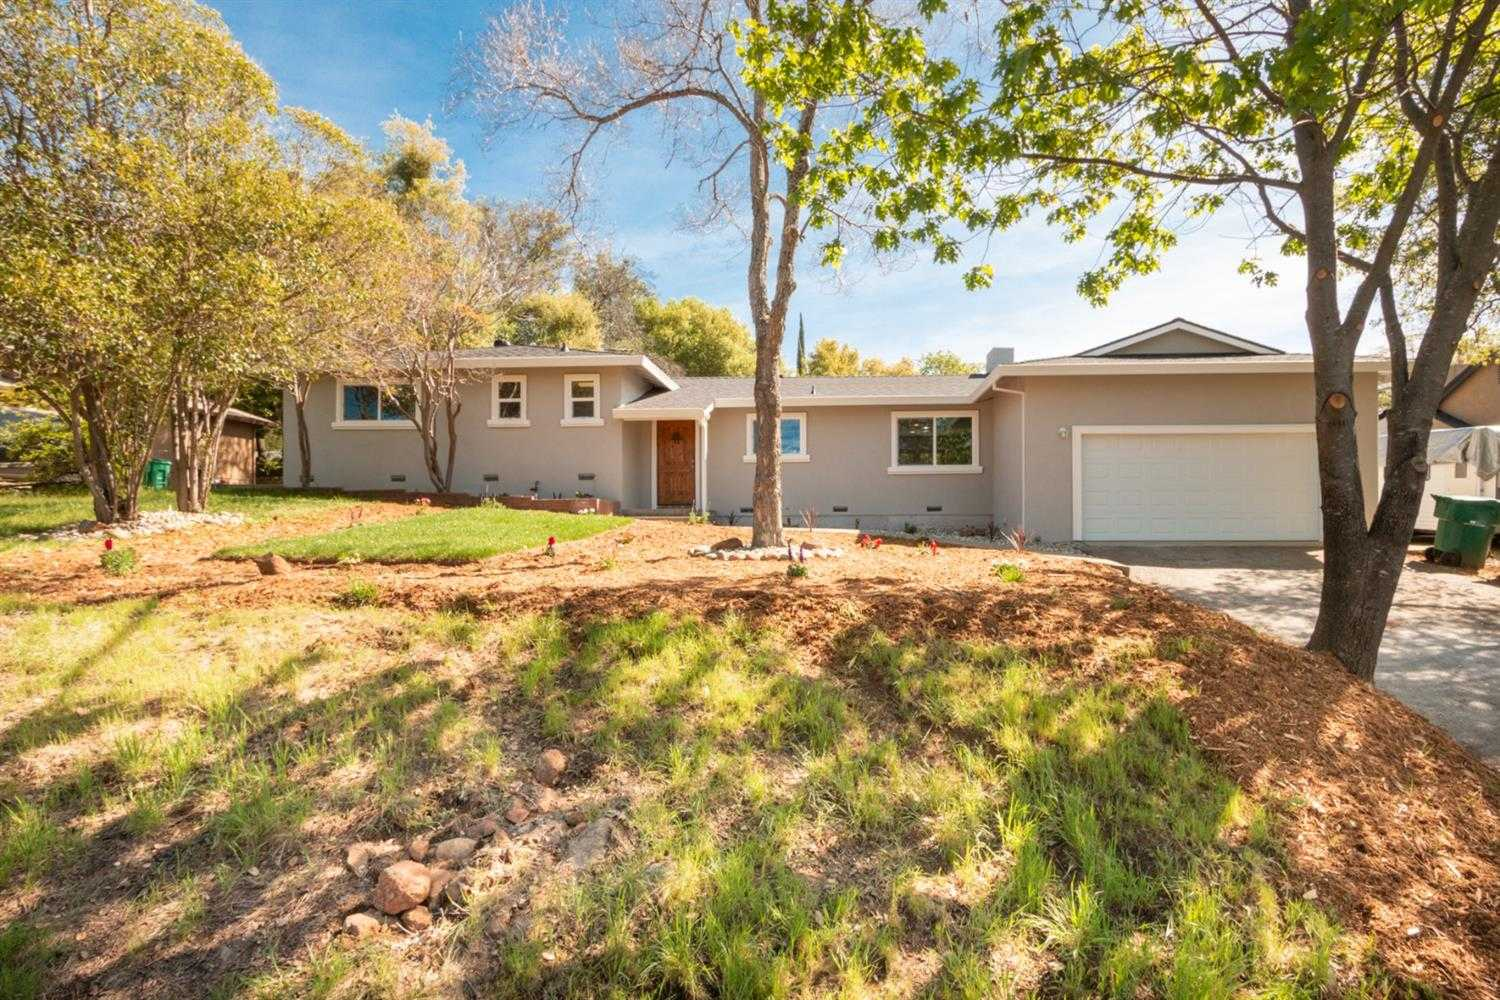 $439,900 - 4Br/2Ba -  for Sale in Cameron Park